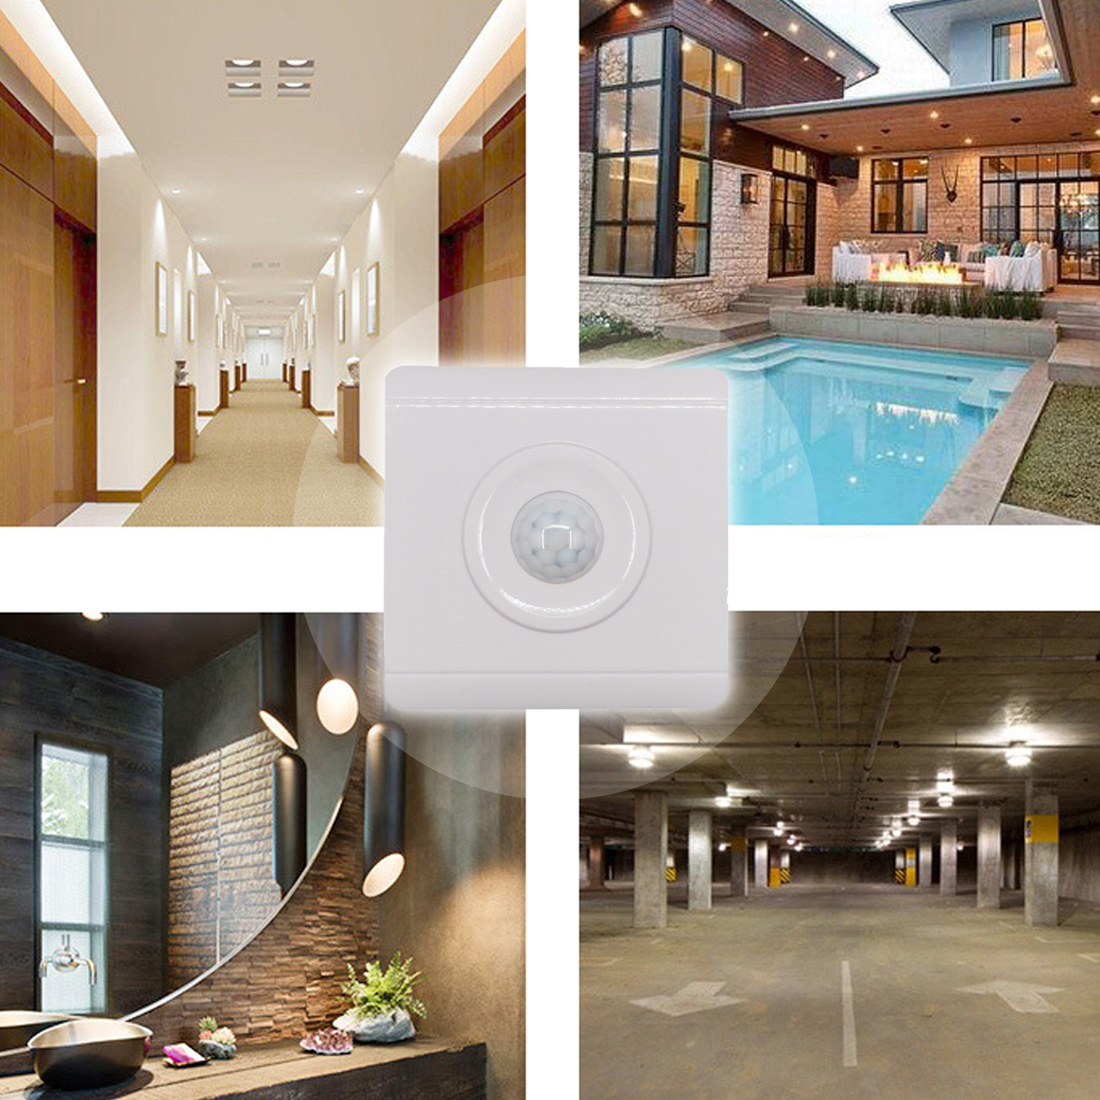 Motion Sensor Switch Time Delay Adjustable Mode Detector Wall Module For LED Light or Fan Infrared Induction AC 220-240VMotion Sensor Switch Time Delay Adjustable Mode Detector Wall Module For LED Light or Fan Infrared Induction AC 220-240V